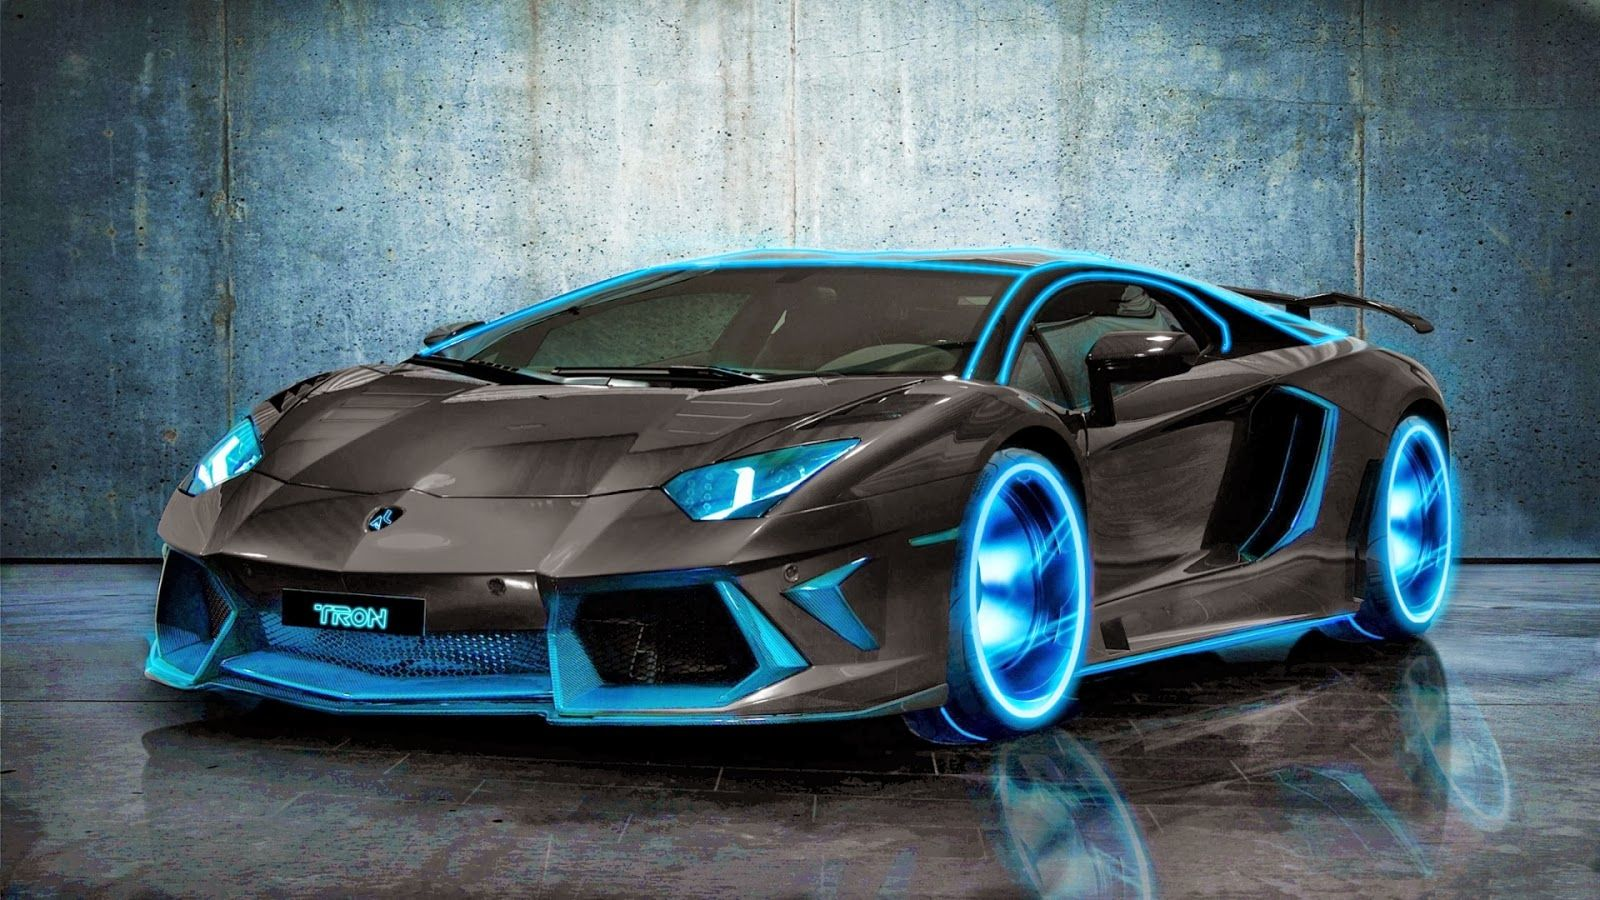 Awesome 3d Wallpaper Sport Cars Wallpaper In 2020 Sports Cars Lamborghini Lamborghini Cars Car Wallpapers